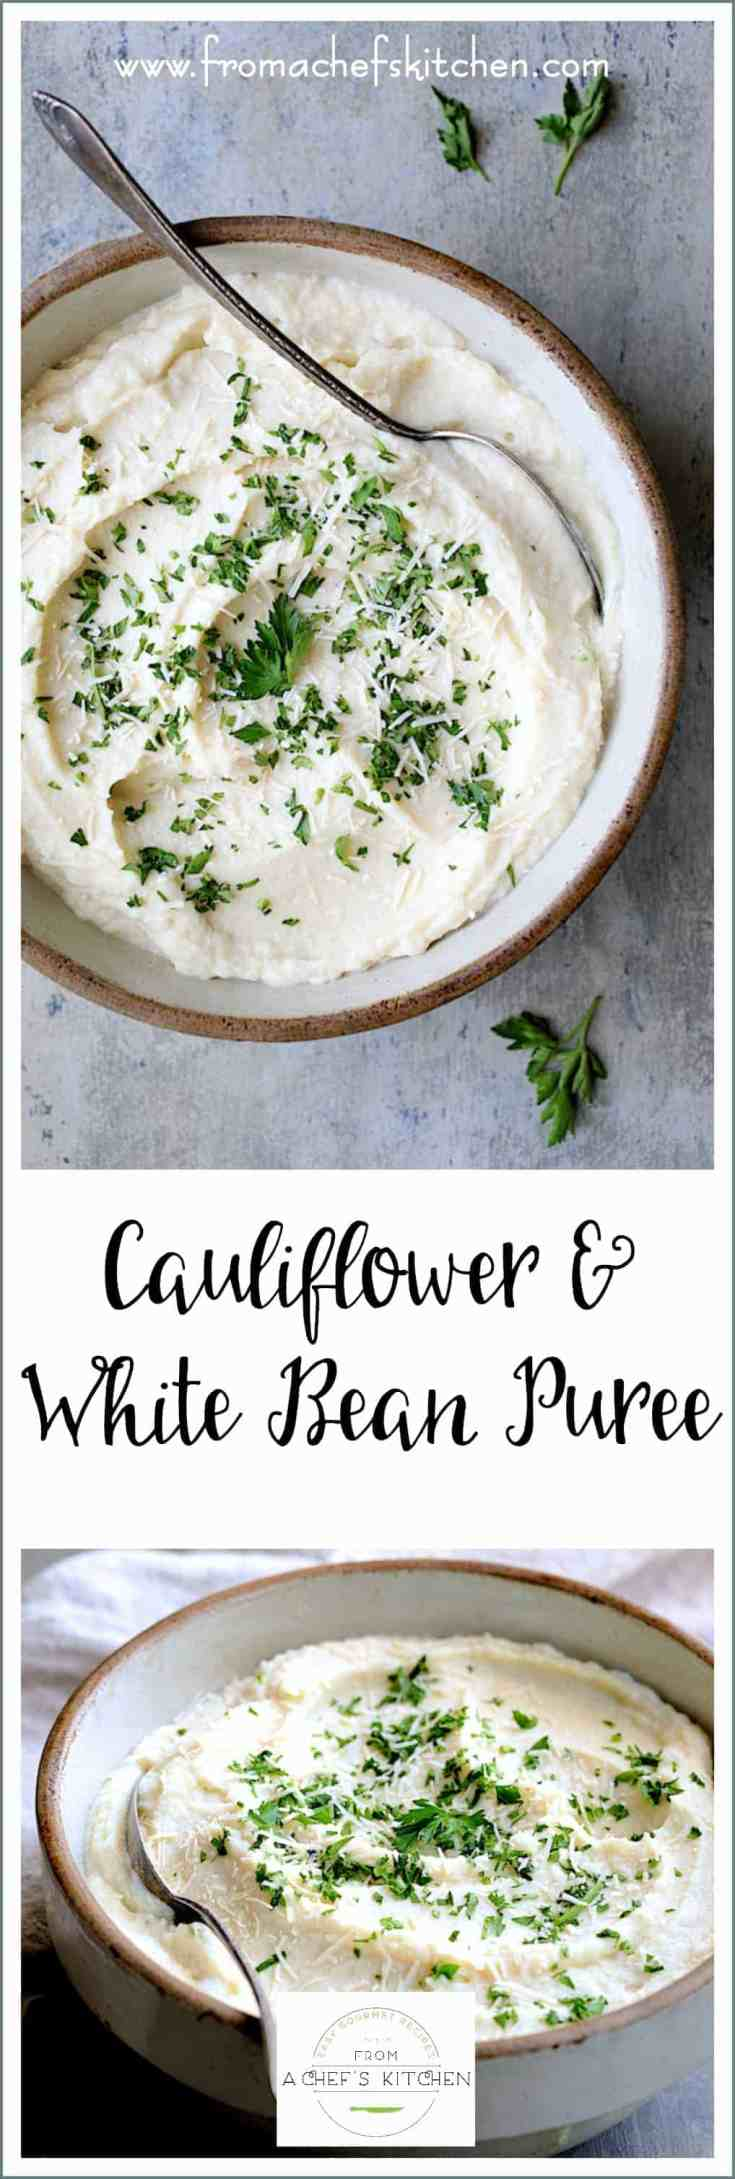 Cauliflower White Bean Puree is the perfect stand-in for decadent mashed potatoes!  Cream cheese makes it creamy while white beans add that touch of thickening and body you crave in a mashed potato substitute while keeping it low-carb!